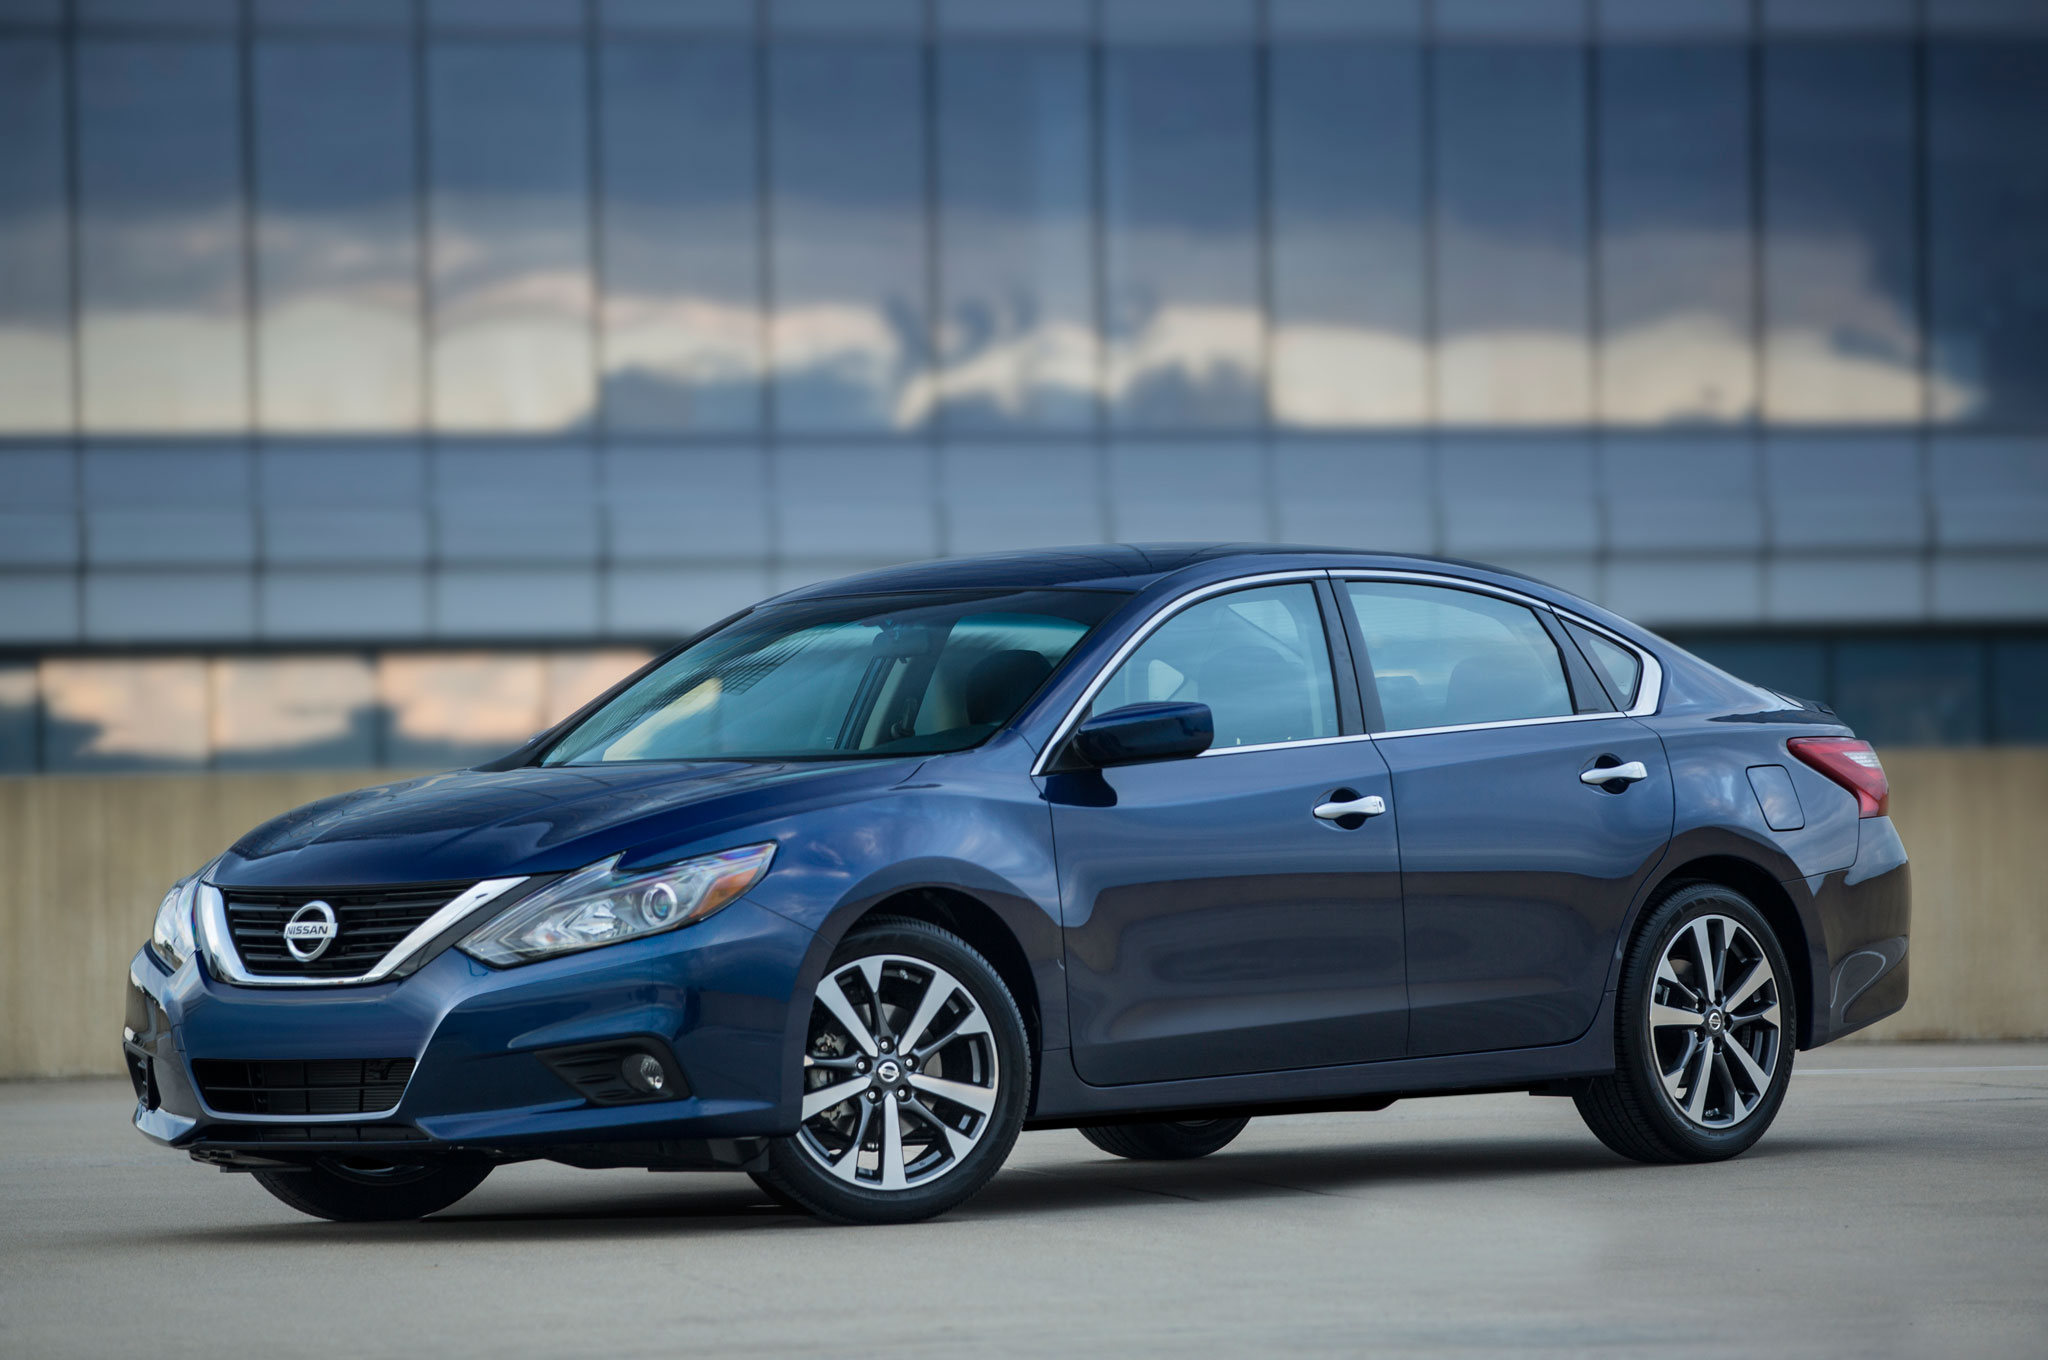 Nissan Altima 2.5 S >> 2016 Nissan Altima Updated with Maxima-Like Design ...